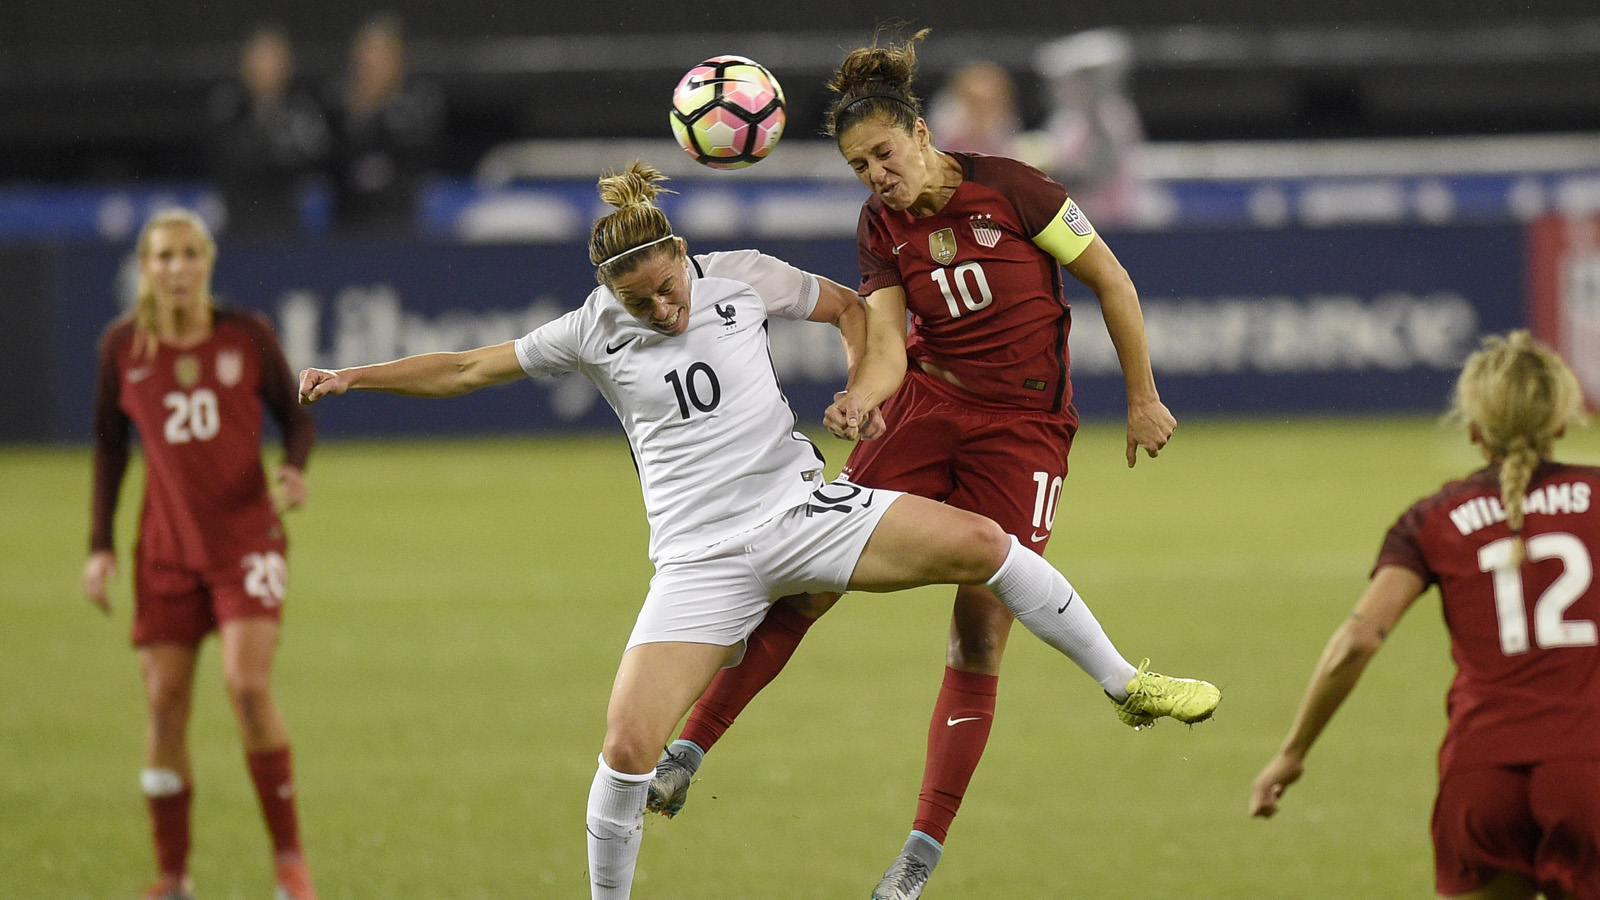 France midfielder Camille Abily, left, battles for the ball against United States midfielder Carli Lloyd, right, during the first half of a SheBelieves Cup women's soccer match, Tuesday, March 7, 2017, in Washington. (AP Photo/Nick Wass)